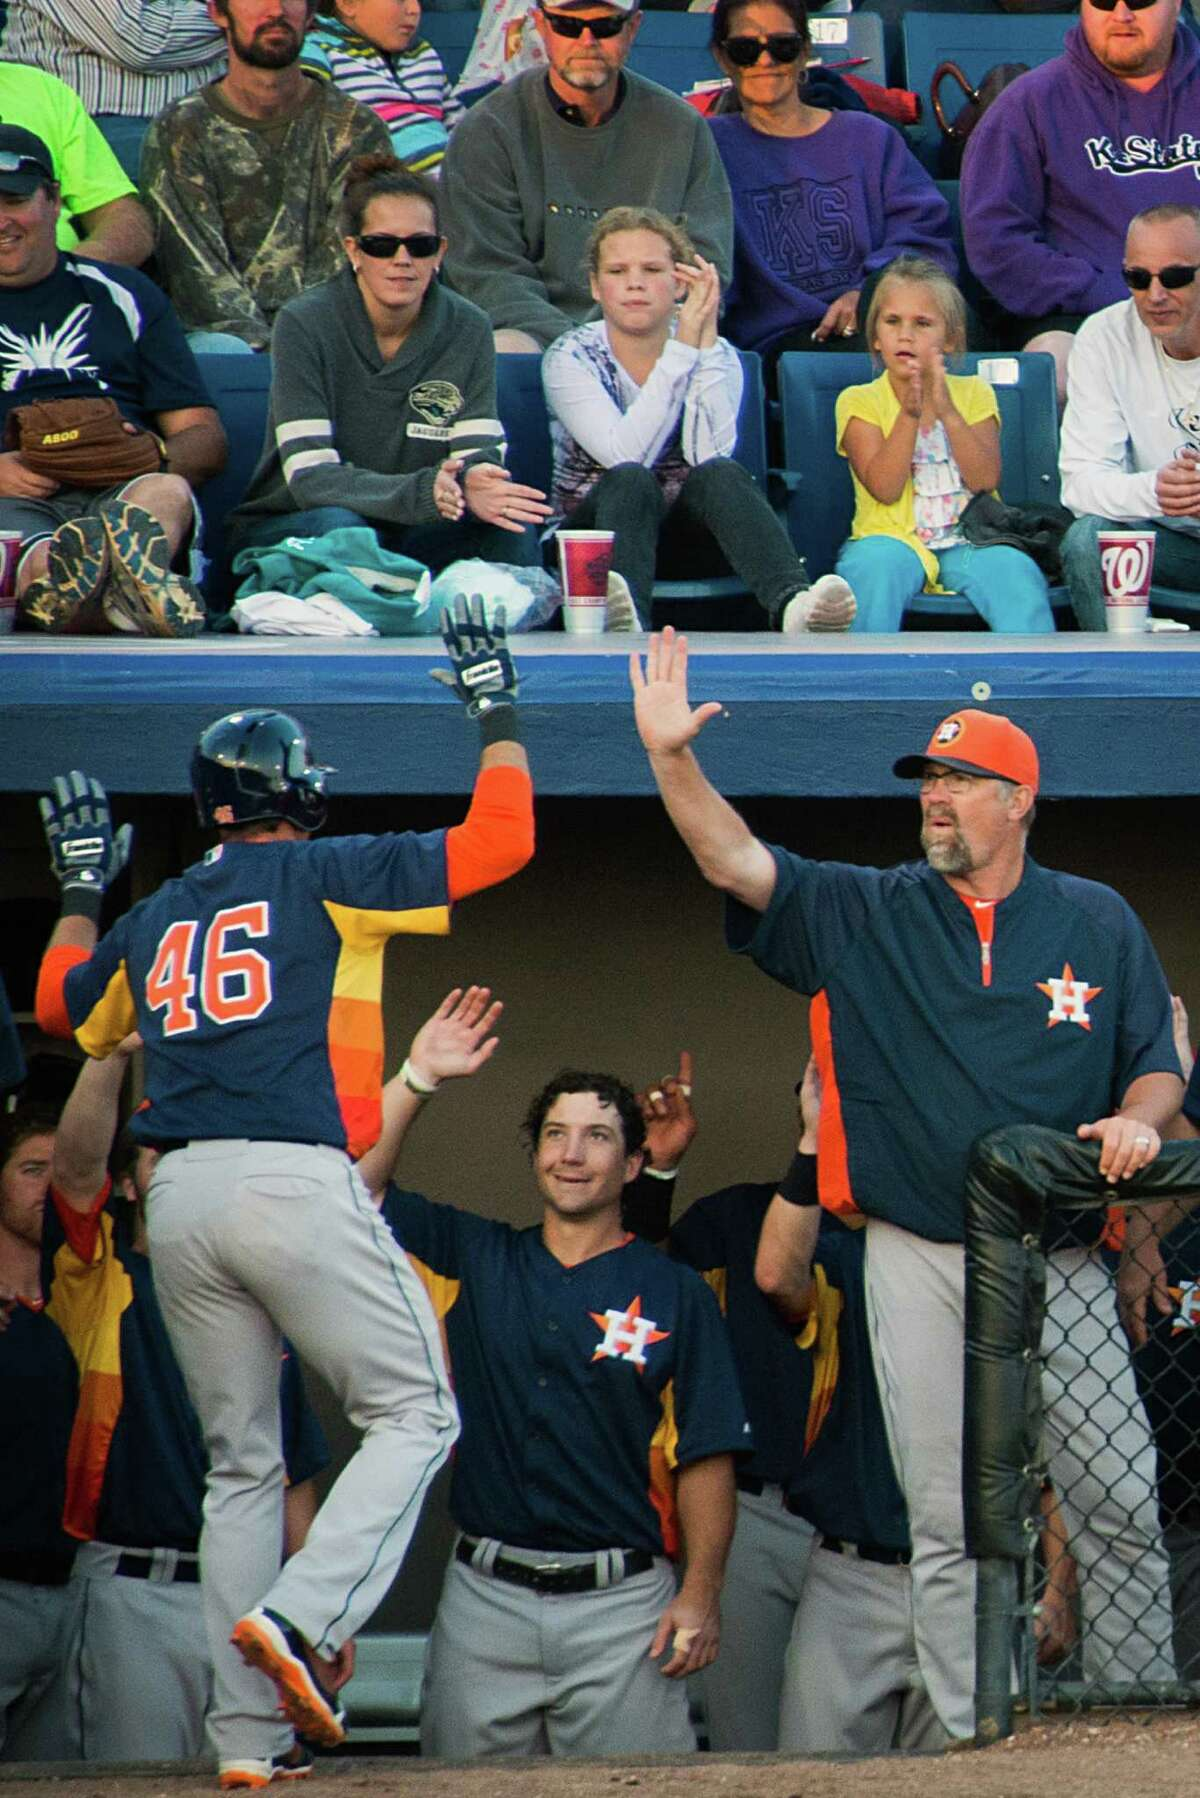 Houston Astros outfielder Rick Ankiel gets a high-five from pitching coach Doug Brocail after hitting a home run during the fourth inning of the Astros 4-2 victory over the Washington Nationals in a spring training exhibition game on Saturday, March 16, 2013, in Viera, Fla. ( Smiley N. Pool / Houston Chronicle )